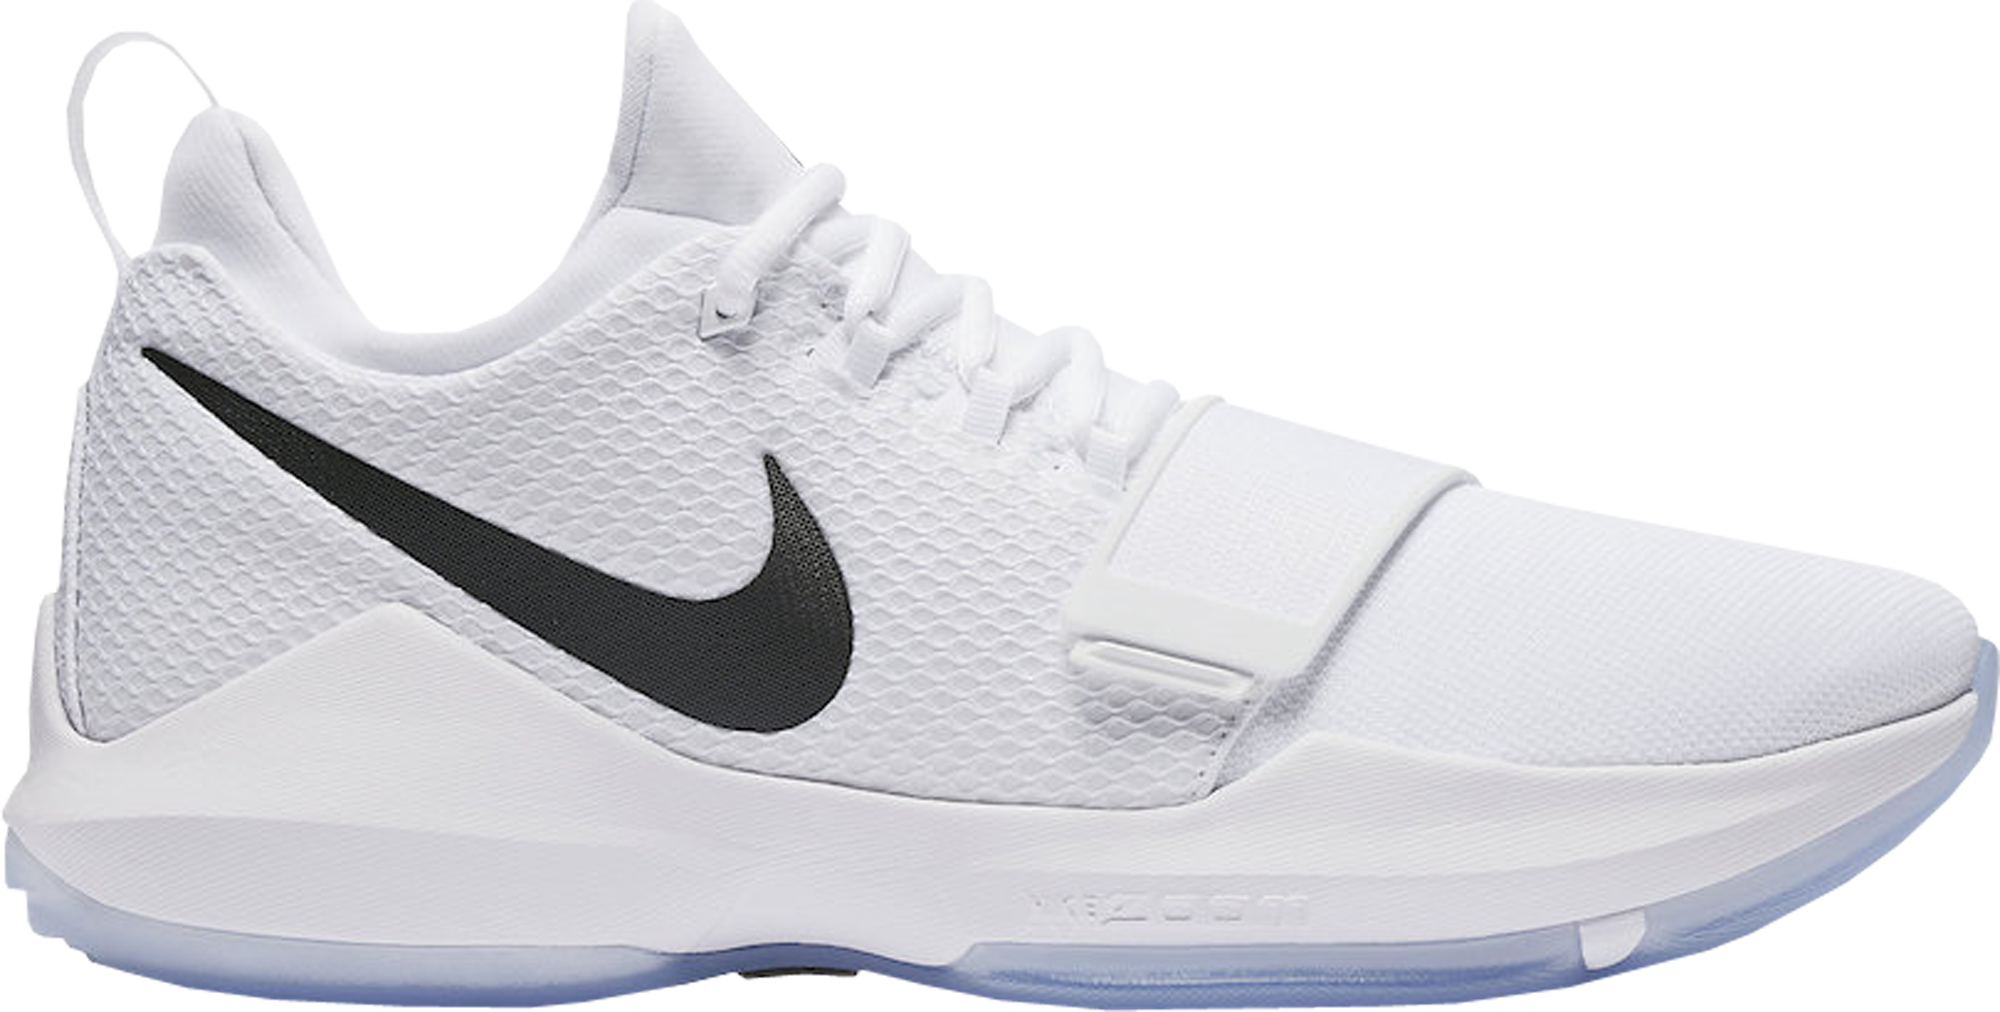 Nike PG 1 White Black Chrome Paul George White Ice